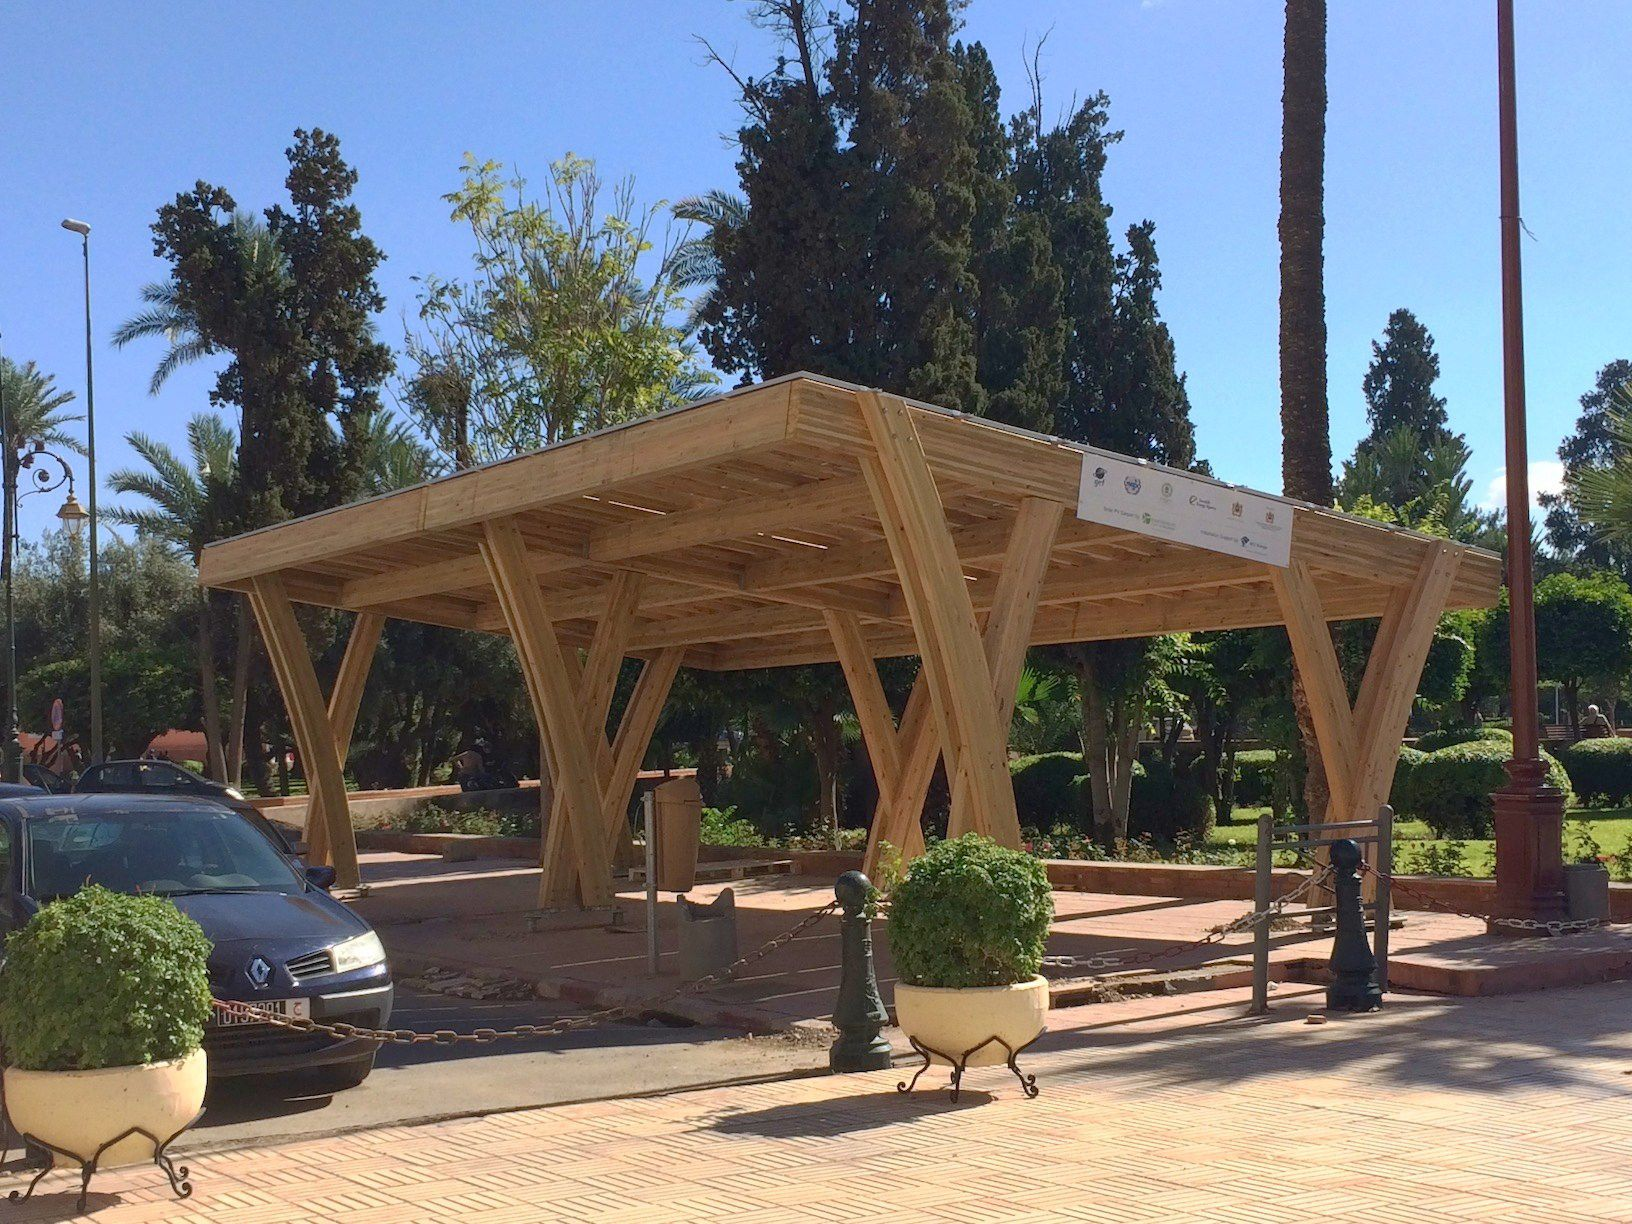 Karpot Wooden Carport - Innoventum - Commercial / With Integrated Photovoltaic Panel